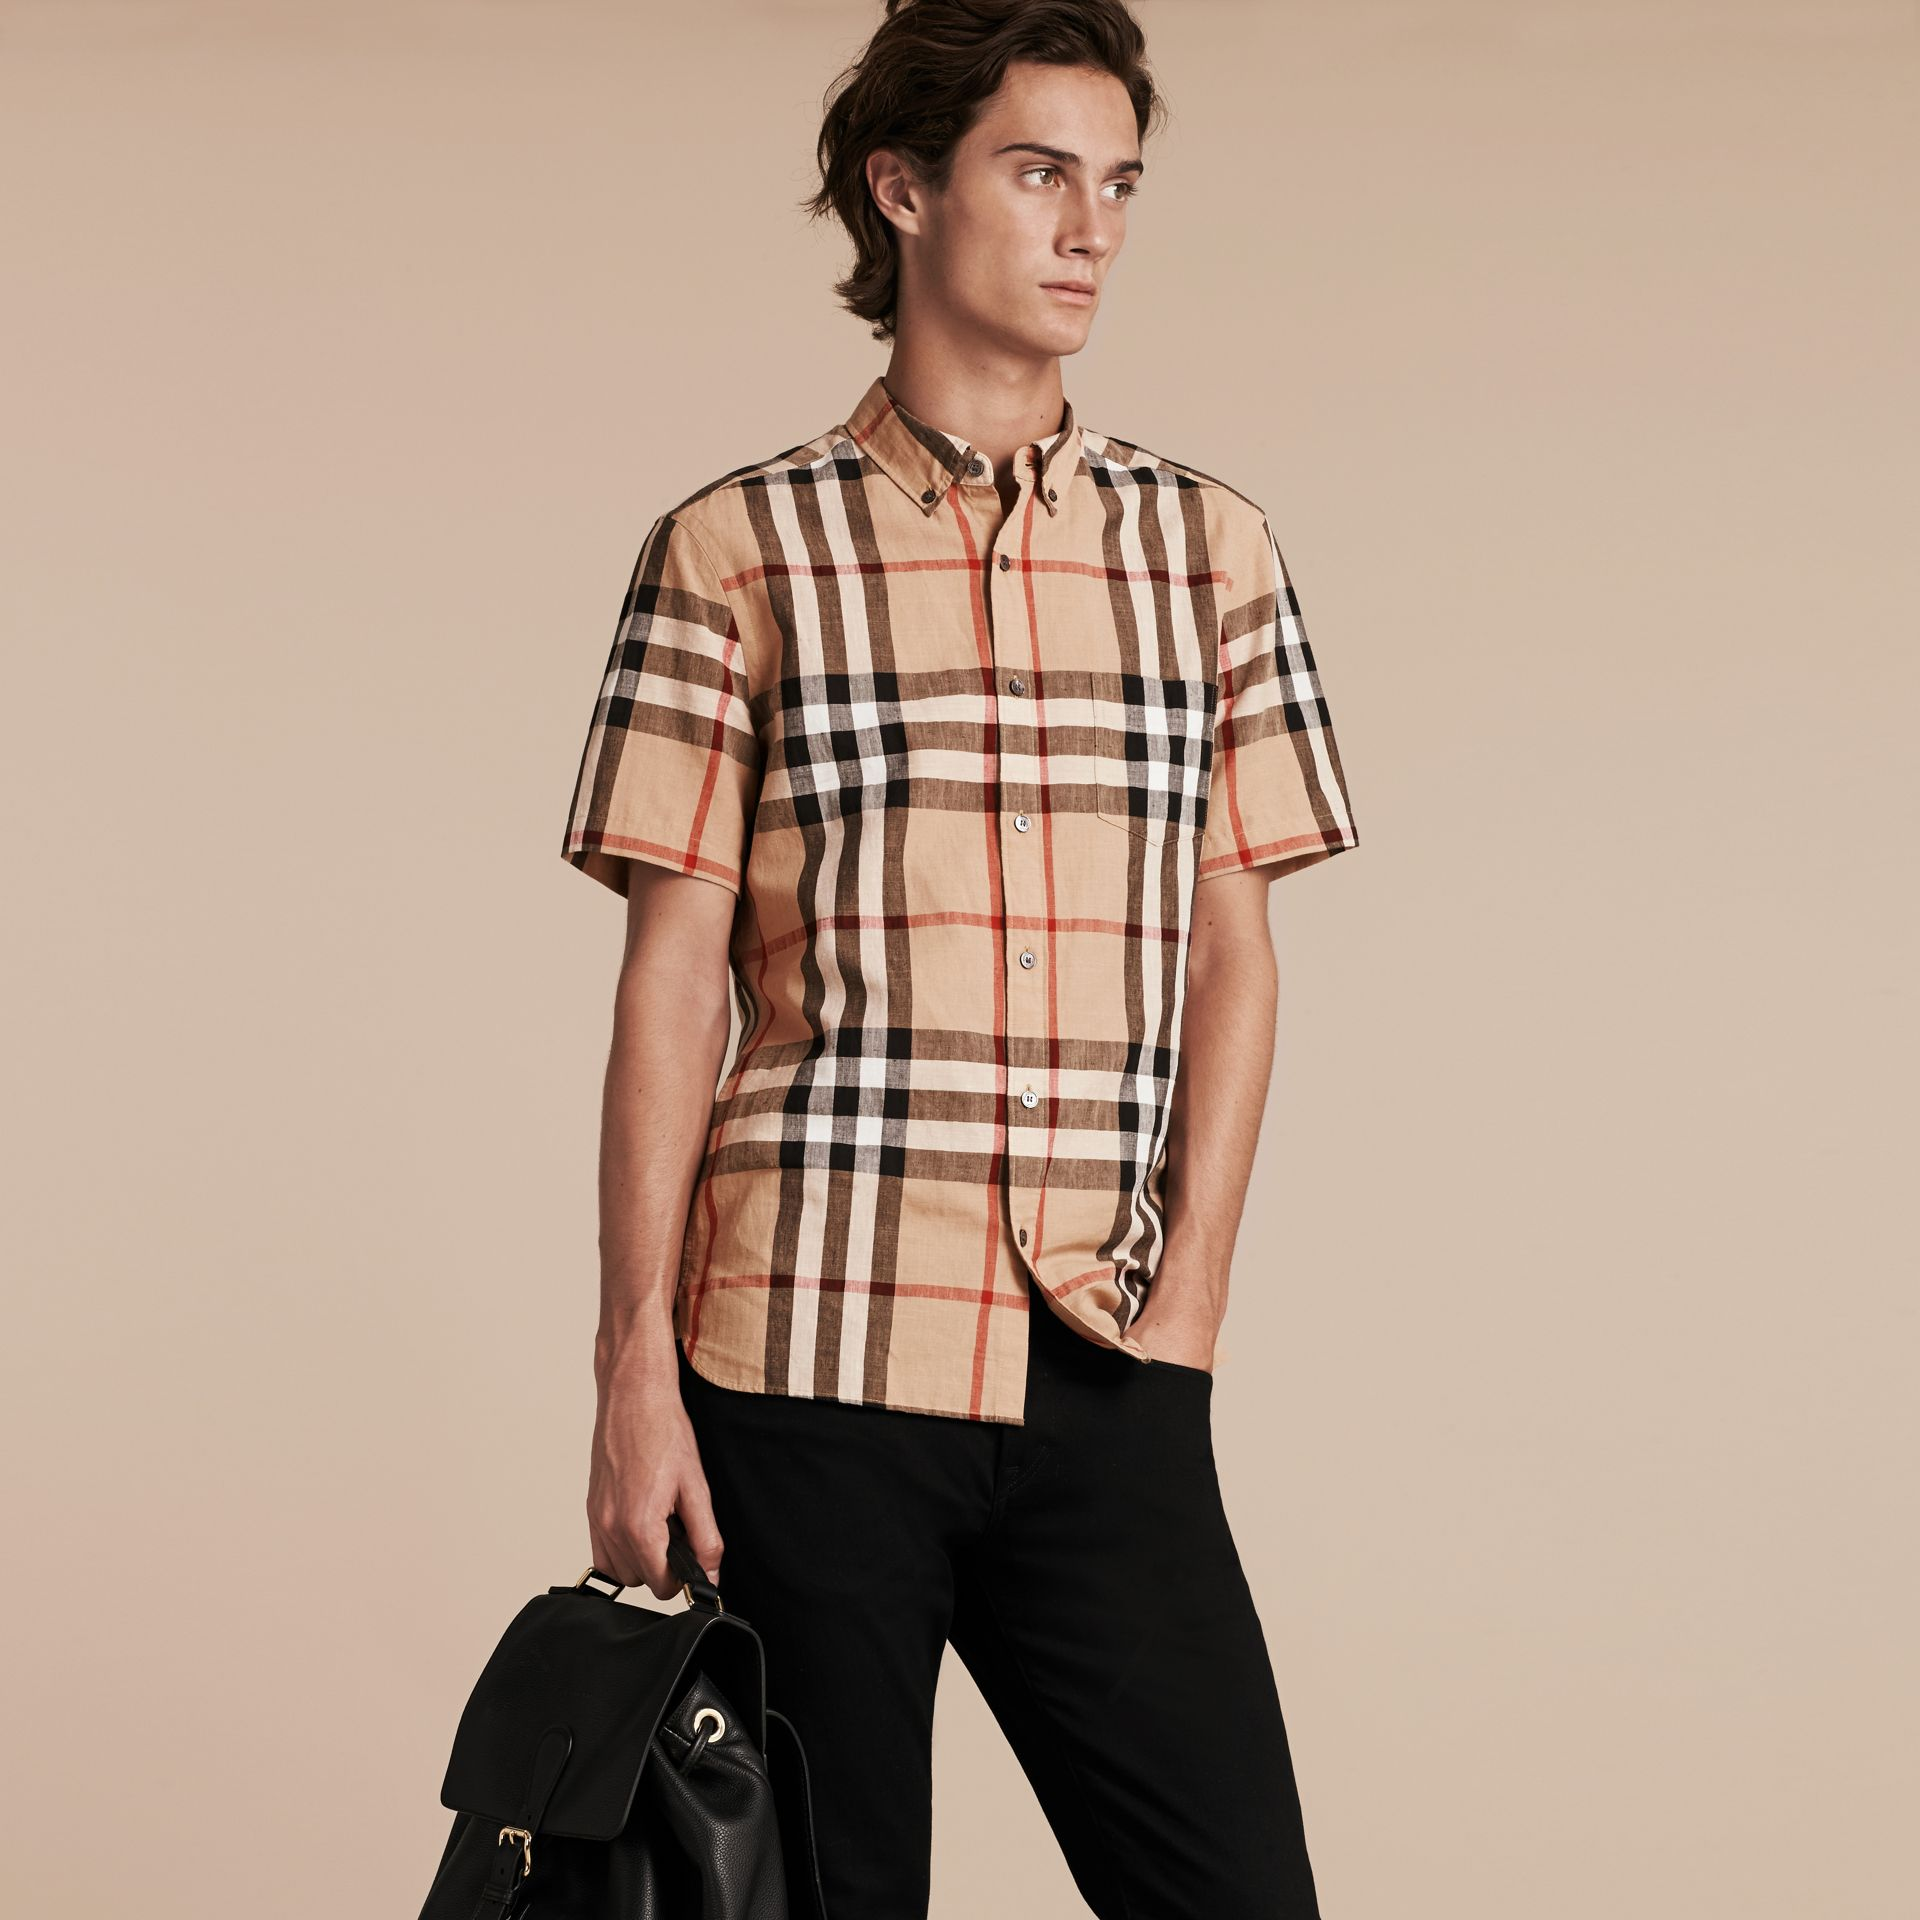 Camel Short-sleeved Check Linen Cotton Shirt Camel - gallery image 4